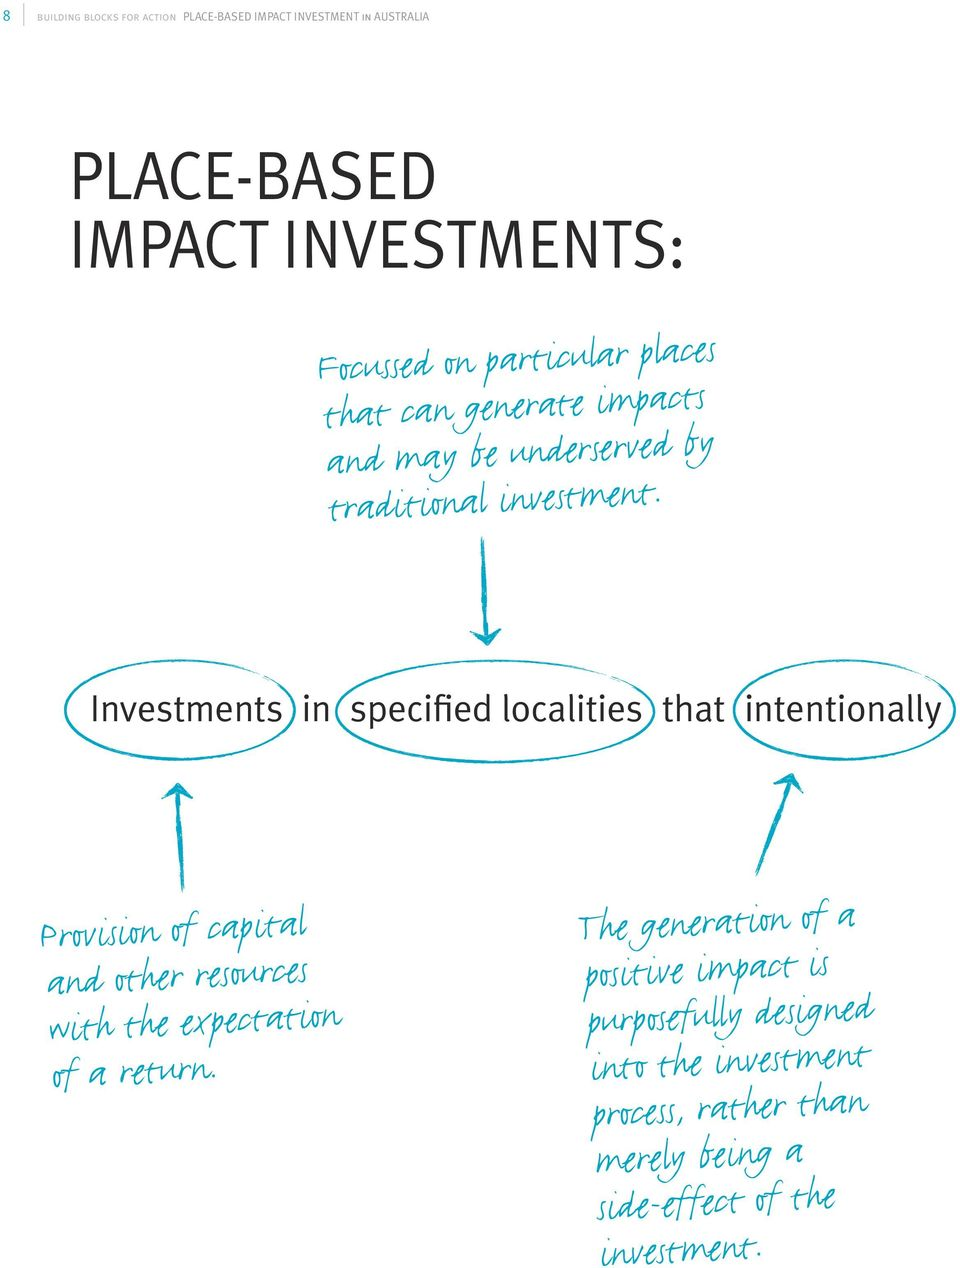 Investments in specified localities that intentionally Provision of capital and other resources with the expectation of a